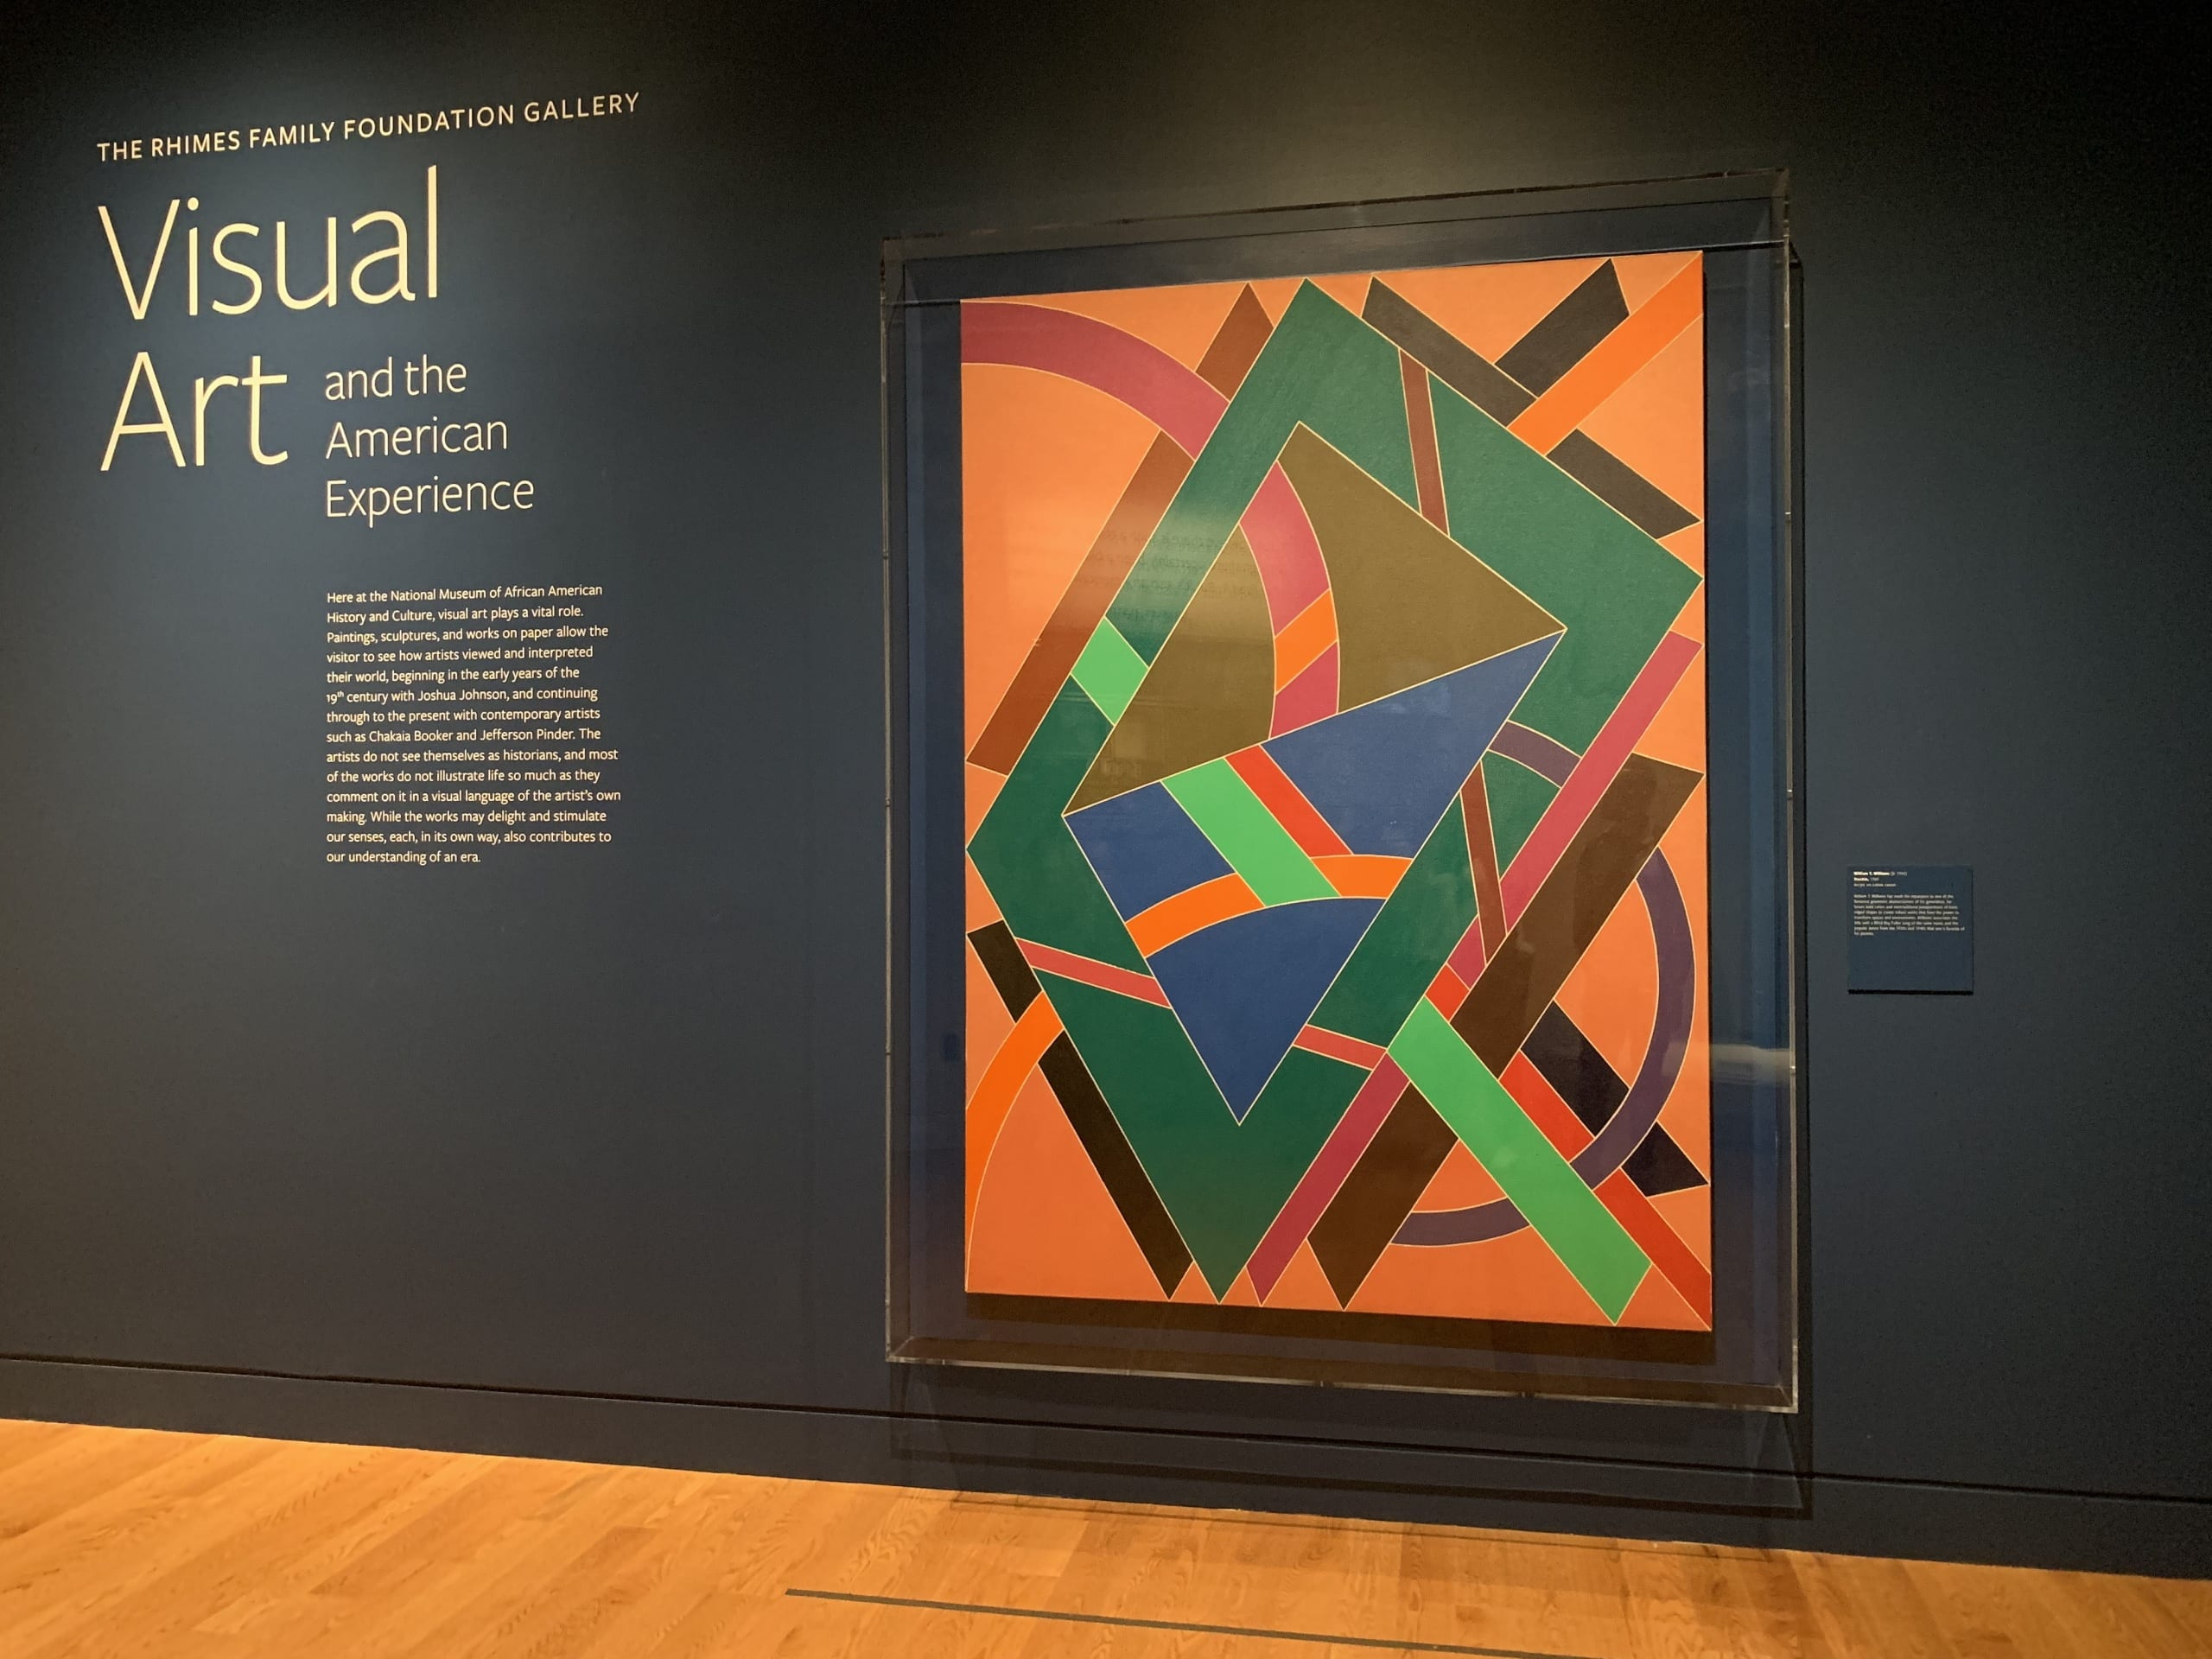 Galleries of Painting and Sculpture: a bright abstract canvas by William T. Williams against a deep blue wall